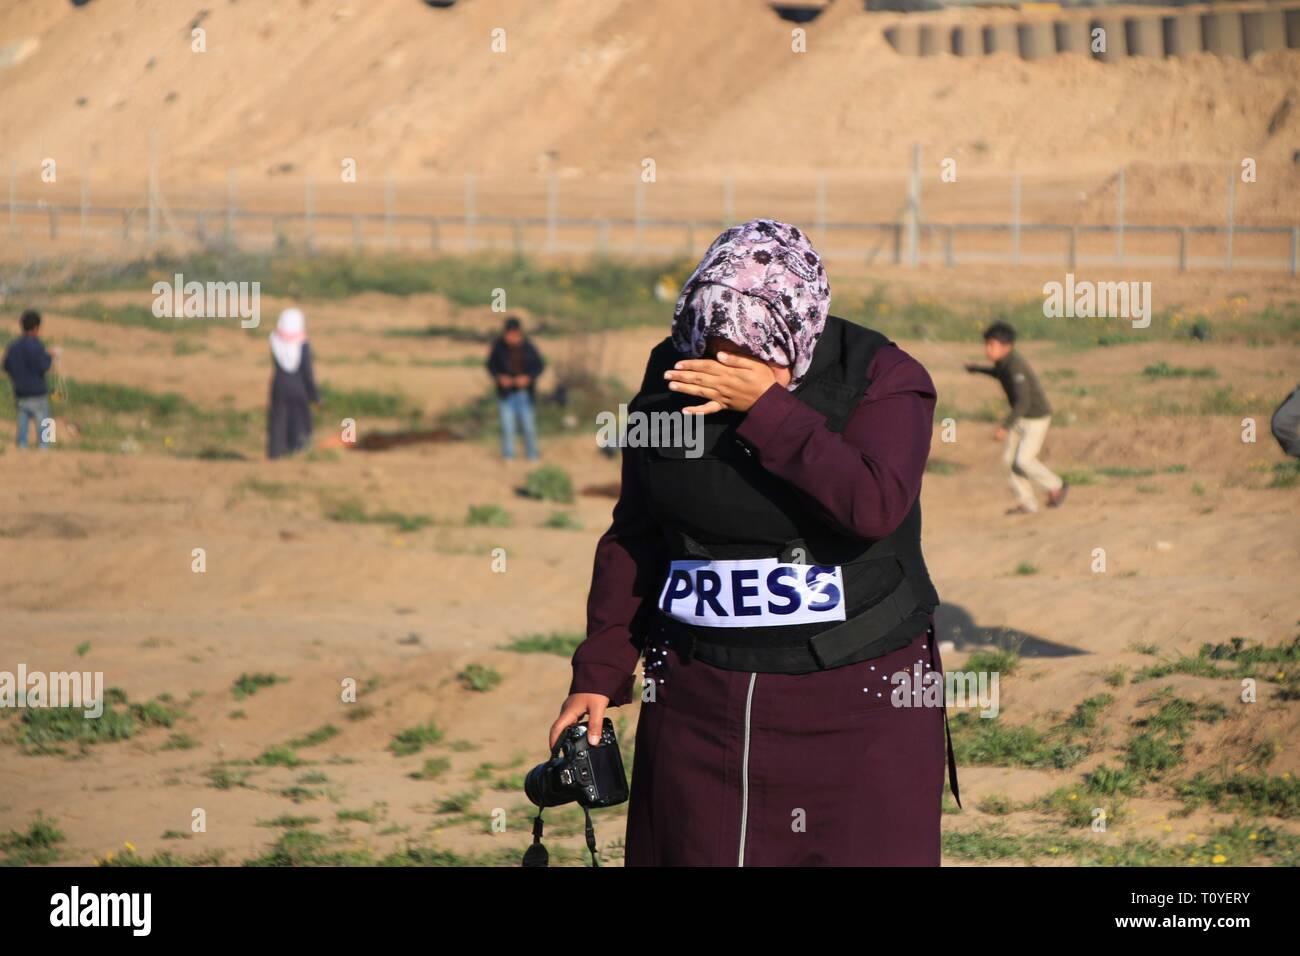 March 22, 2019 - Al-Buraj Refugee Camp, The Gaza Strip, Palestine - Clashes between Palestinians and Israeli troops at al-Buraj refugee camp in central of the Gaza Strip, Palestinian Health Ministry in Gaza confirmed that 30 Palestinians were shot and injured with Israeli live fire, while dozens of others suffered from tear-gas inhalation, including a number of health workers. Credit: Mahmoud Khattab/Quds Net News/ZUMA Wire/Alamy Live News - Stock Image